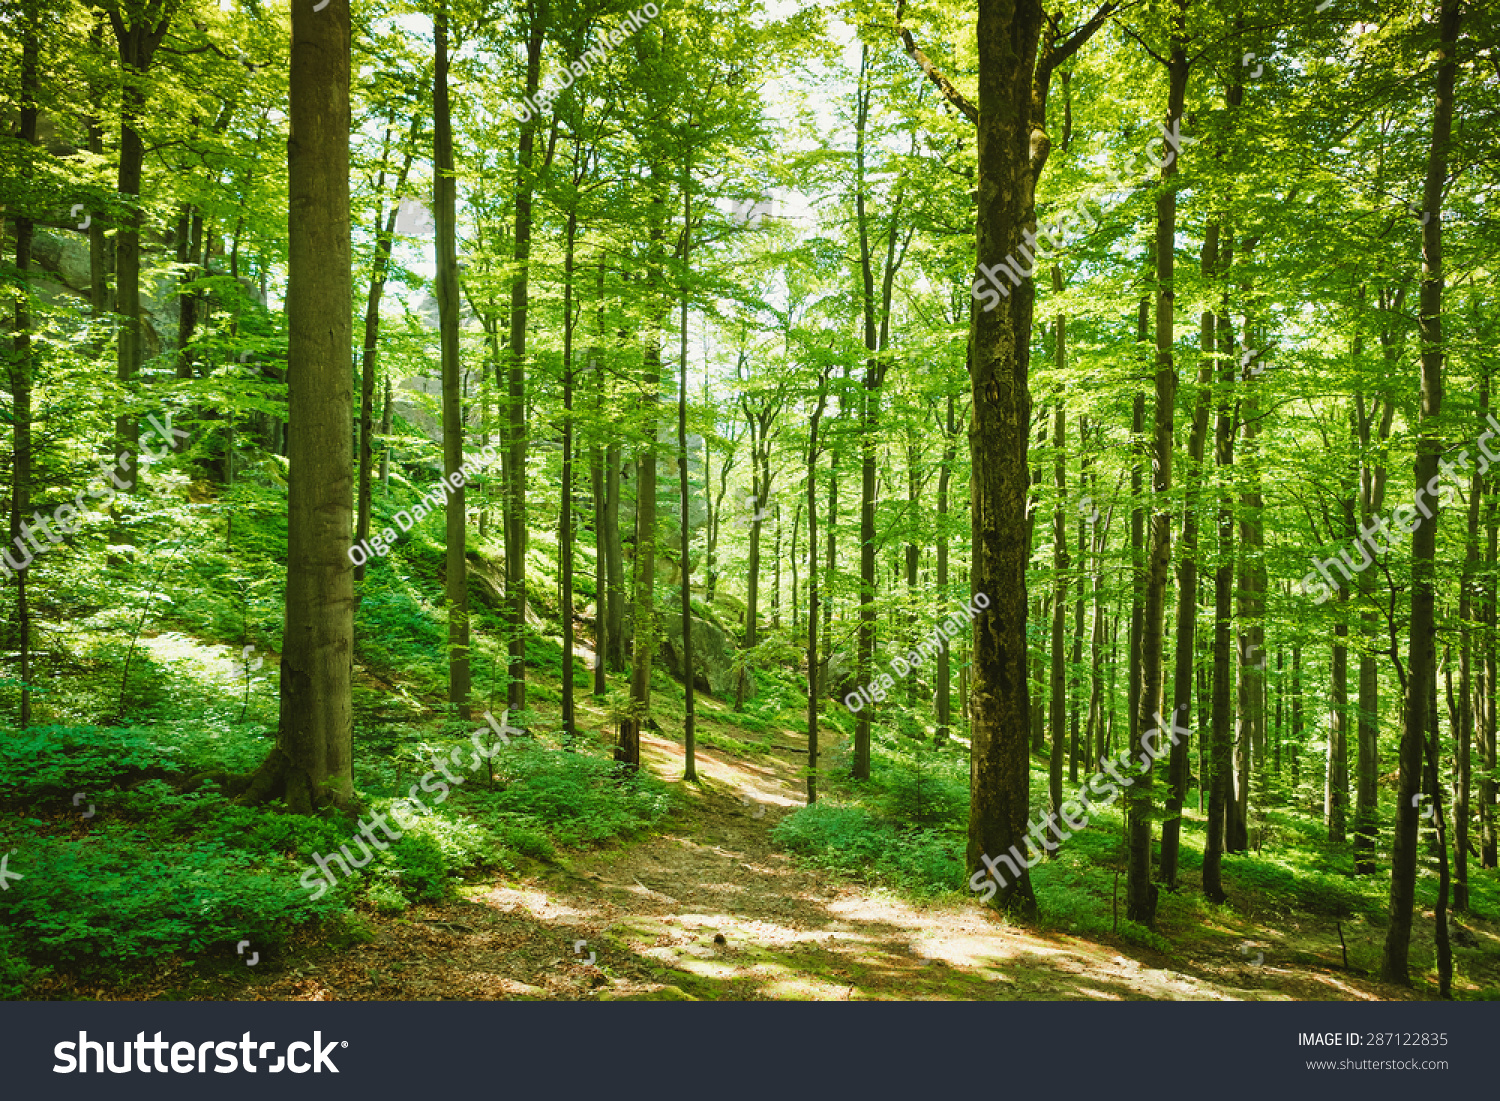 Forest trees. nature green wood sunlight backgrounds #287122835